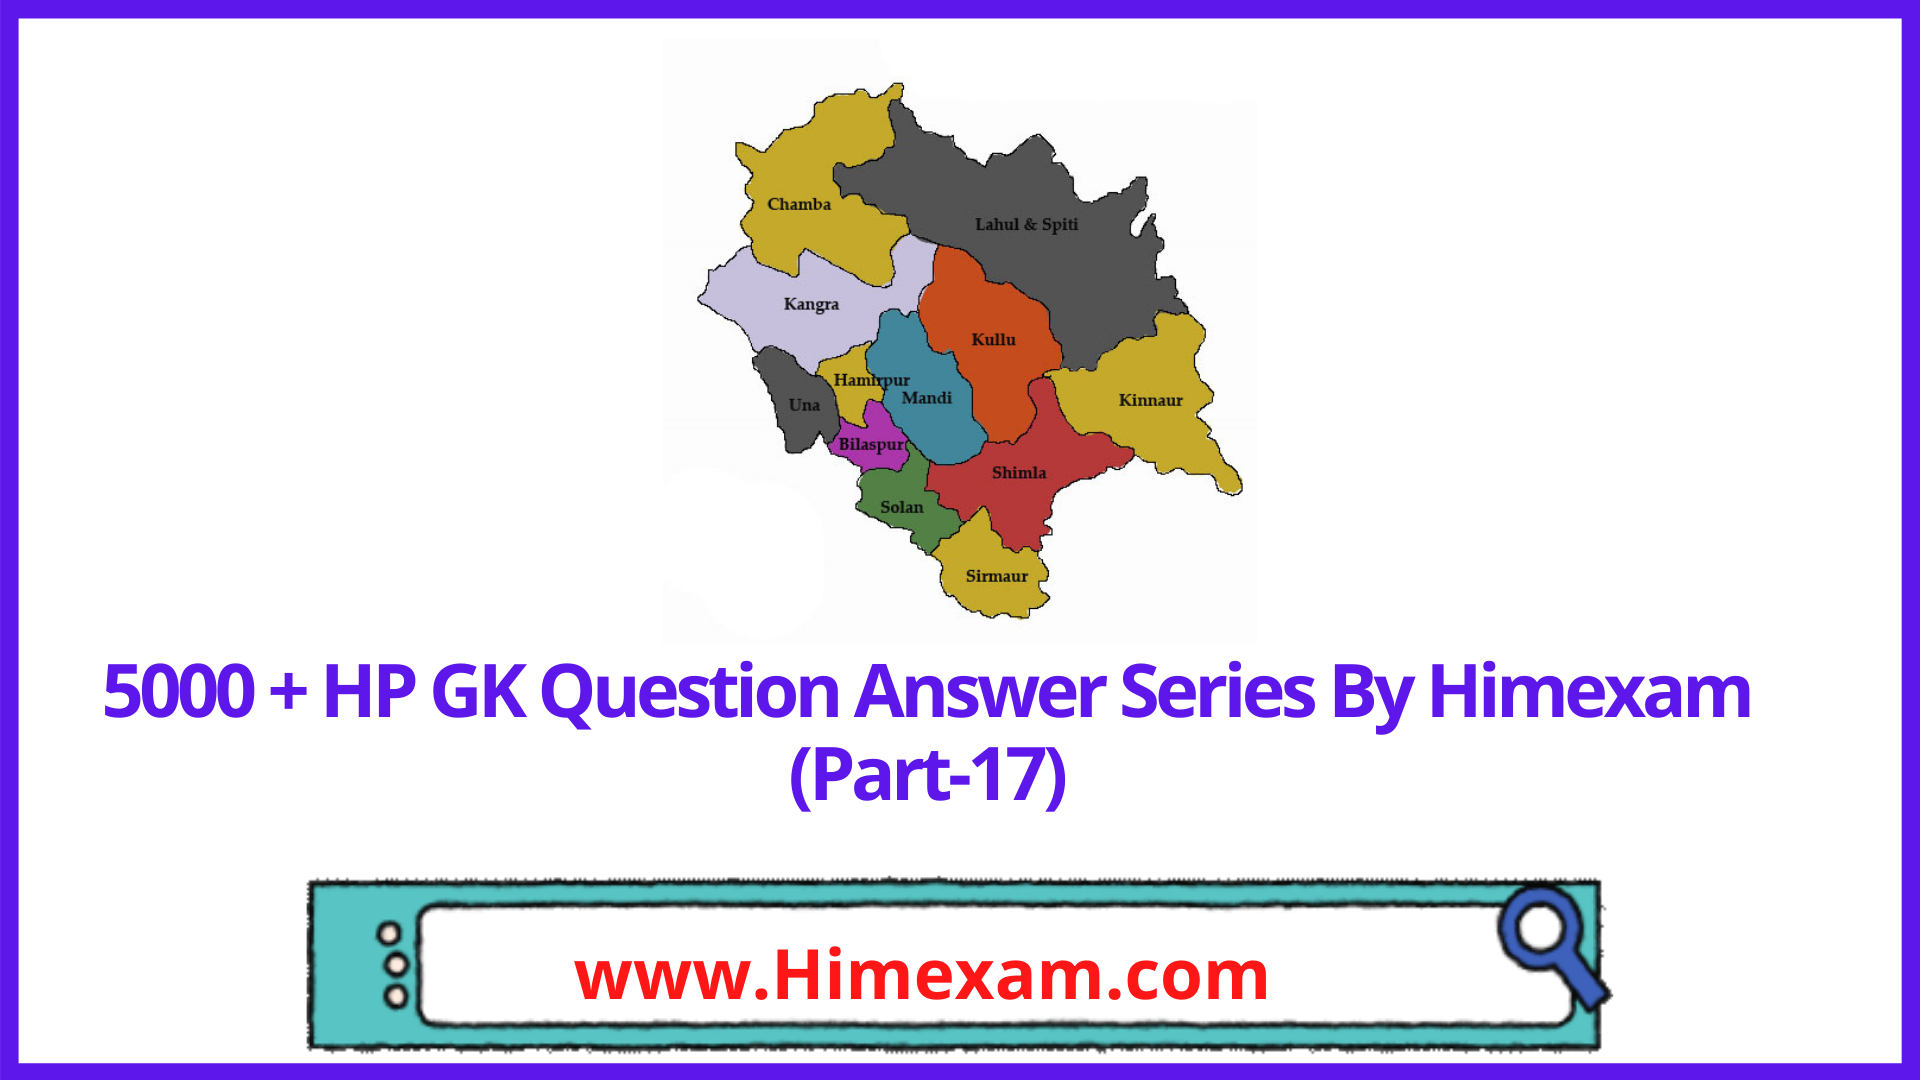 5000 + HP GK Question Answer Series By Himexam (Part-17)